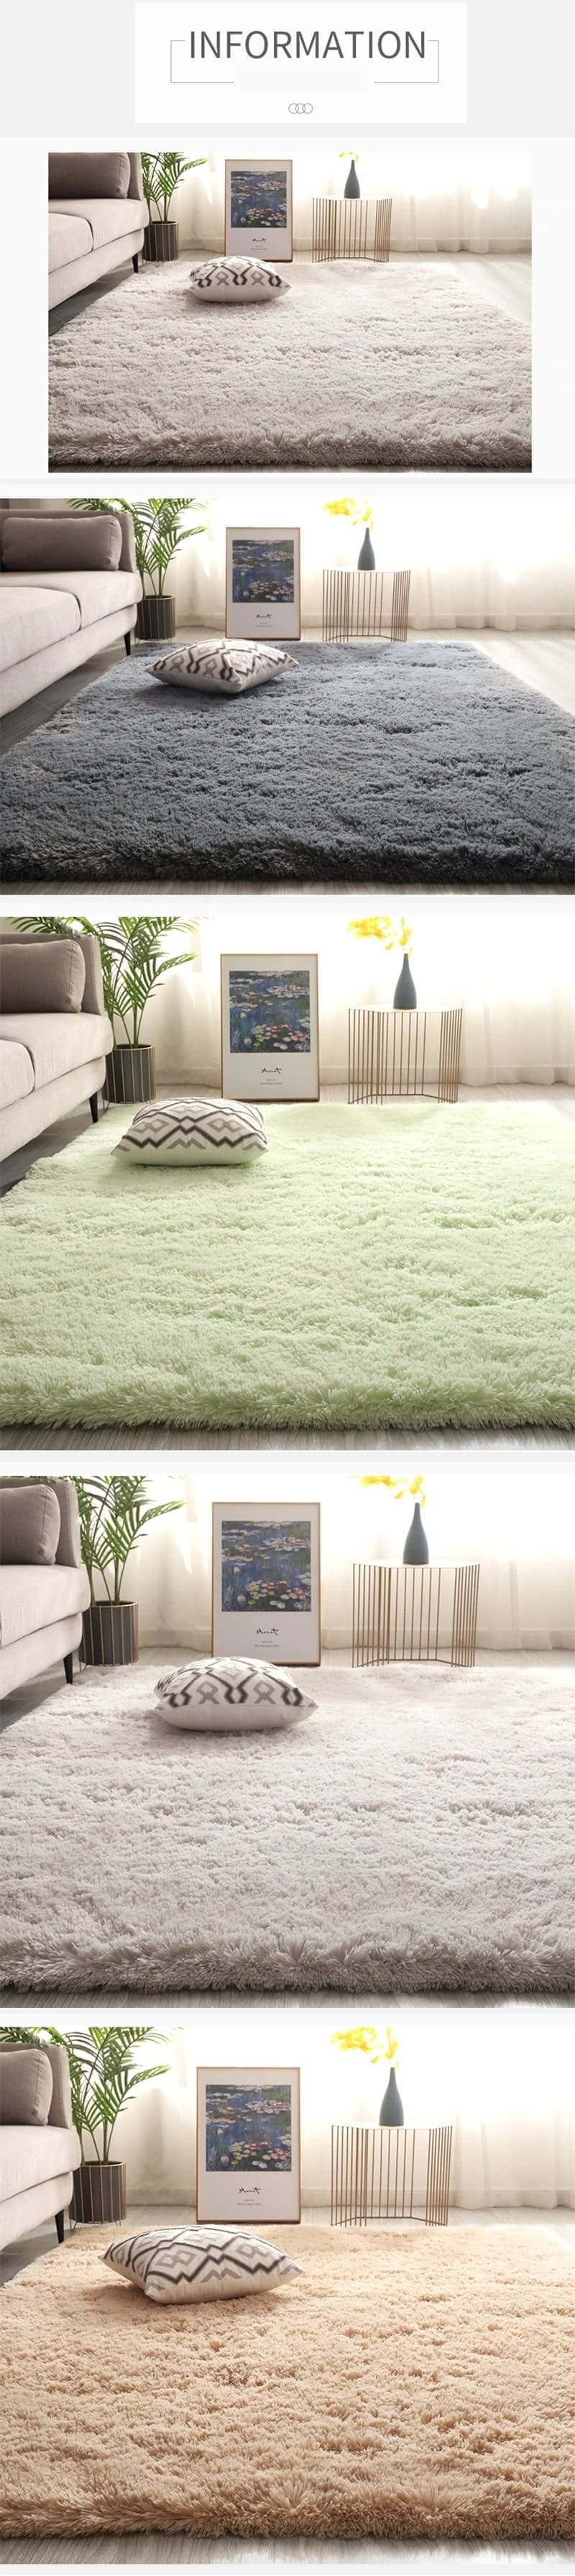 Rug available in different colors: blue, gray, green